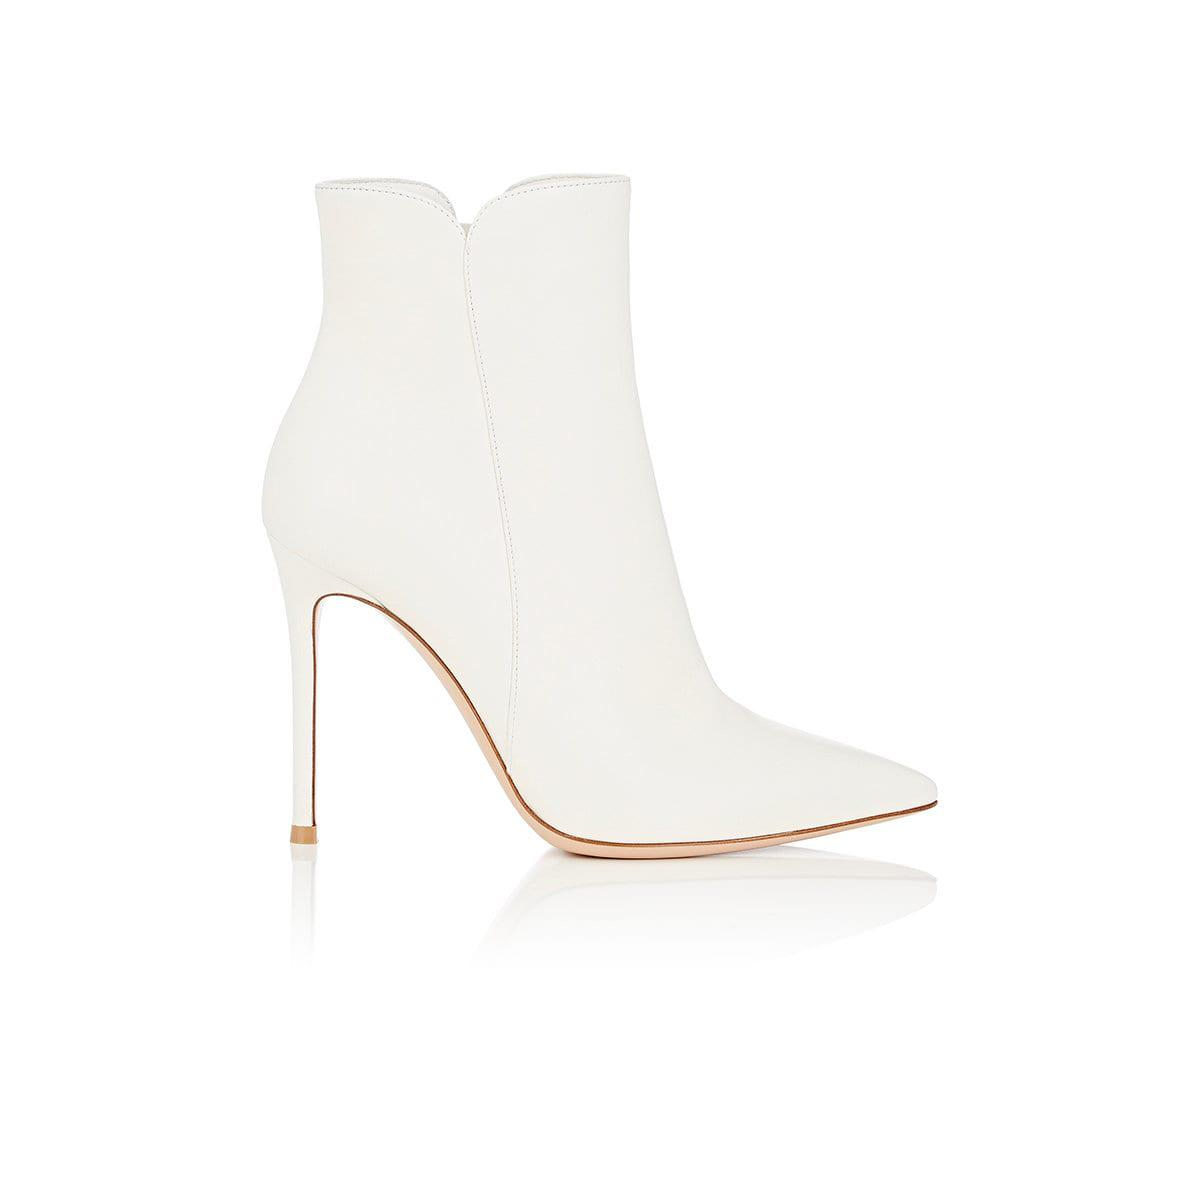 Buy Cheap Outlet Locations Levy 105 Offwhite Leather Booties Gianvito Rossi Buy Cheap View Clearance Comfortable Discount Fake Pay With Visa Online 8Iqgx8nu4r